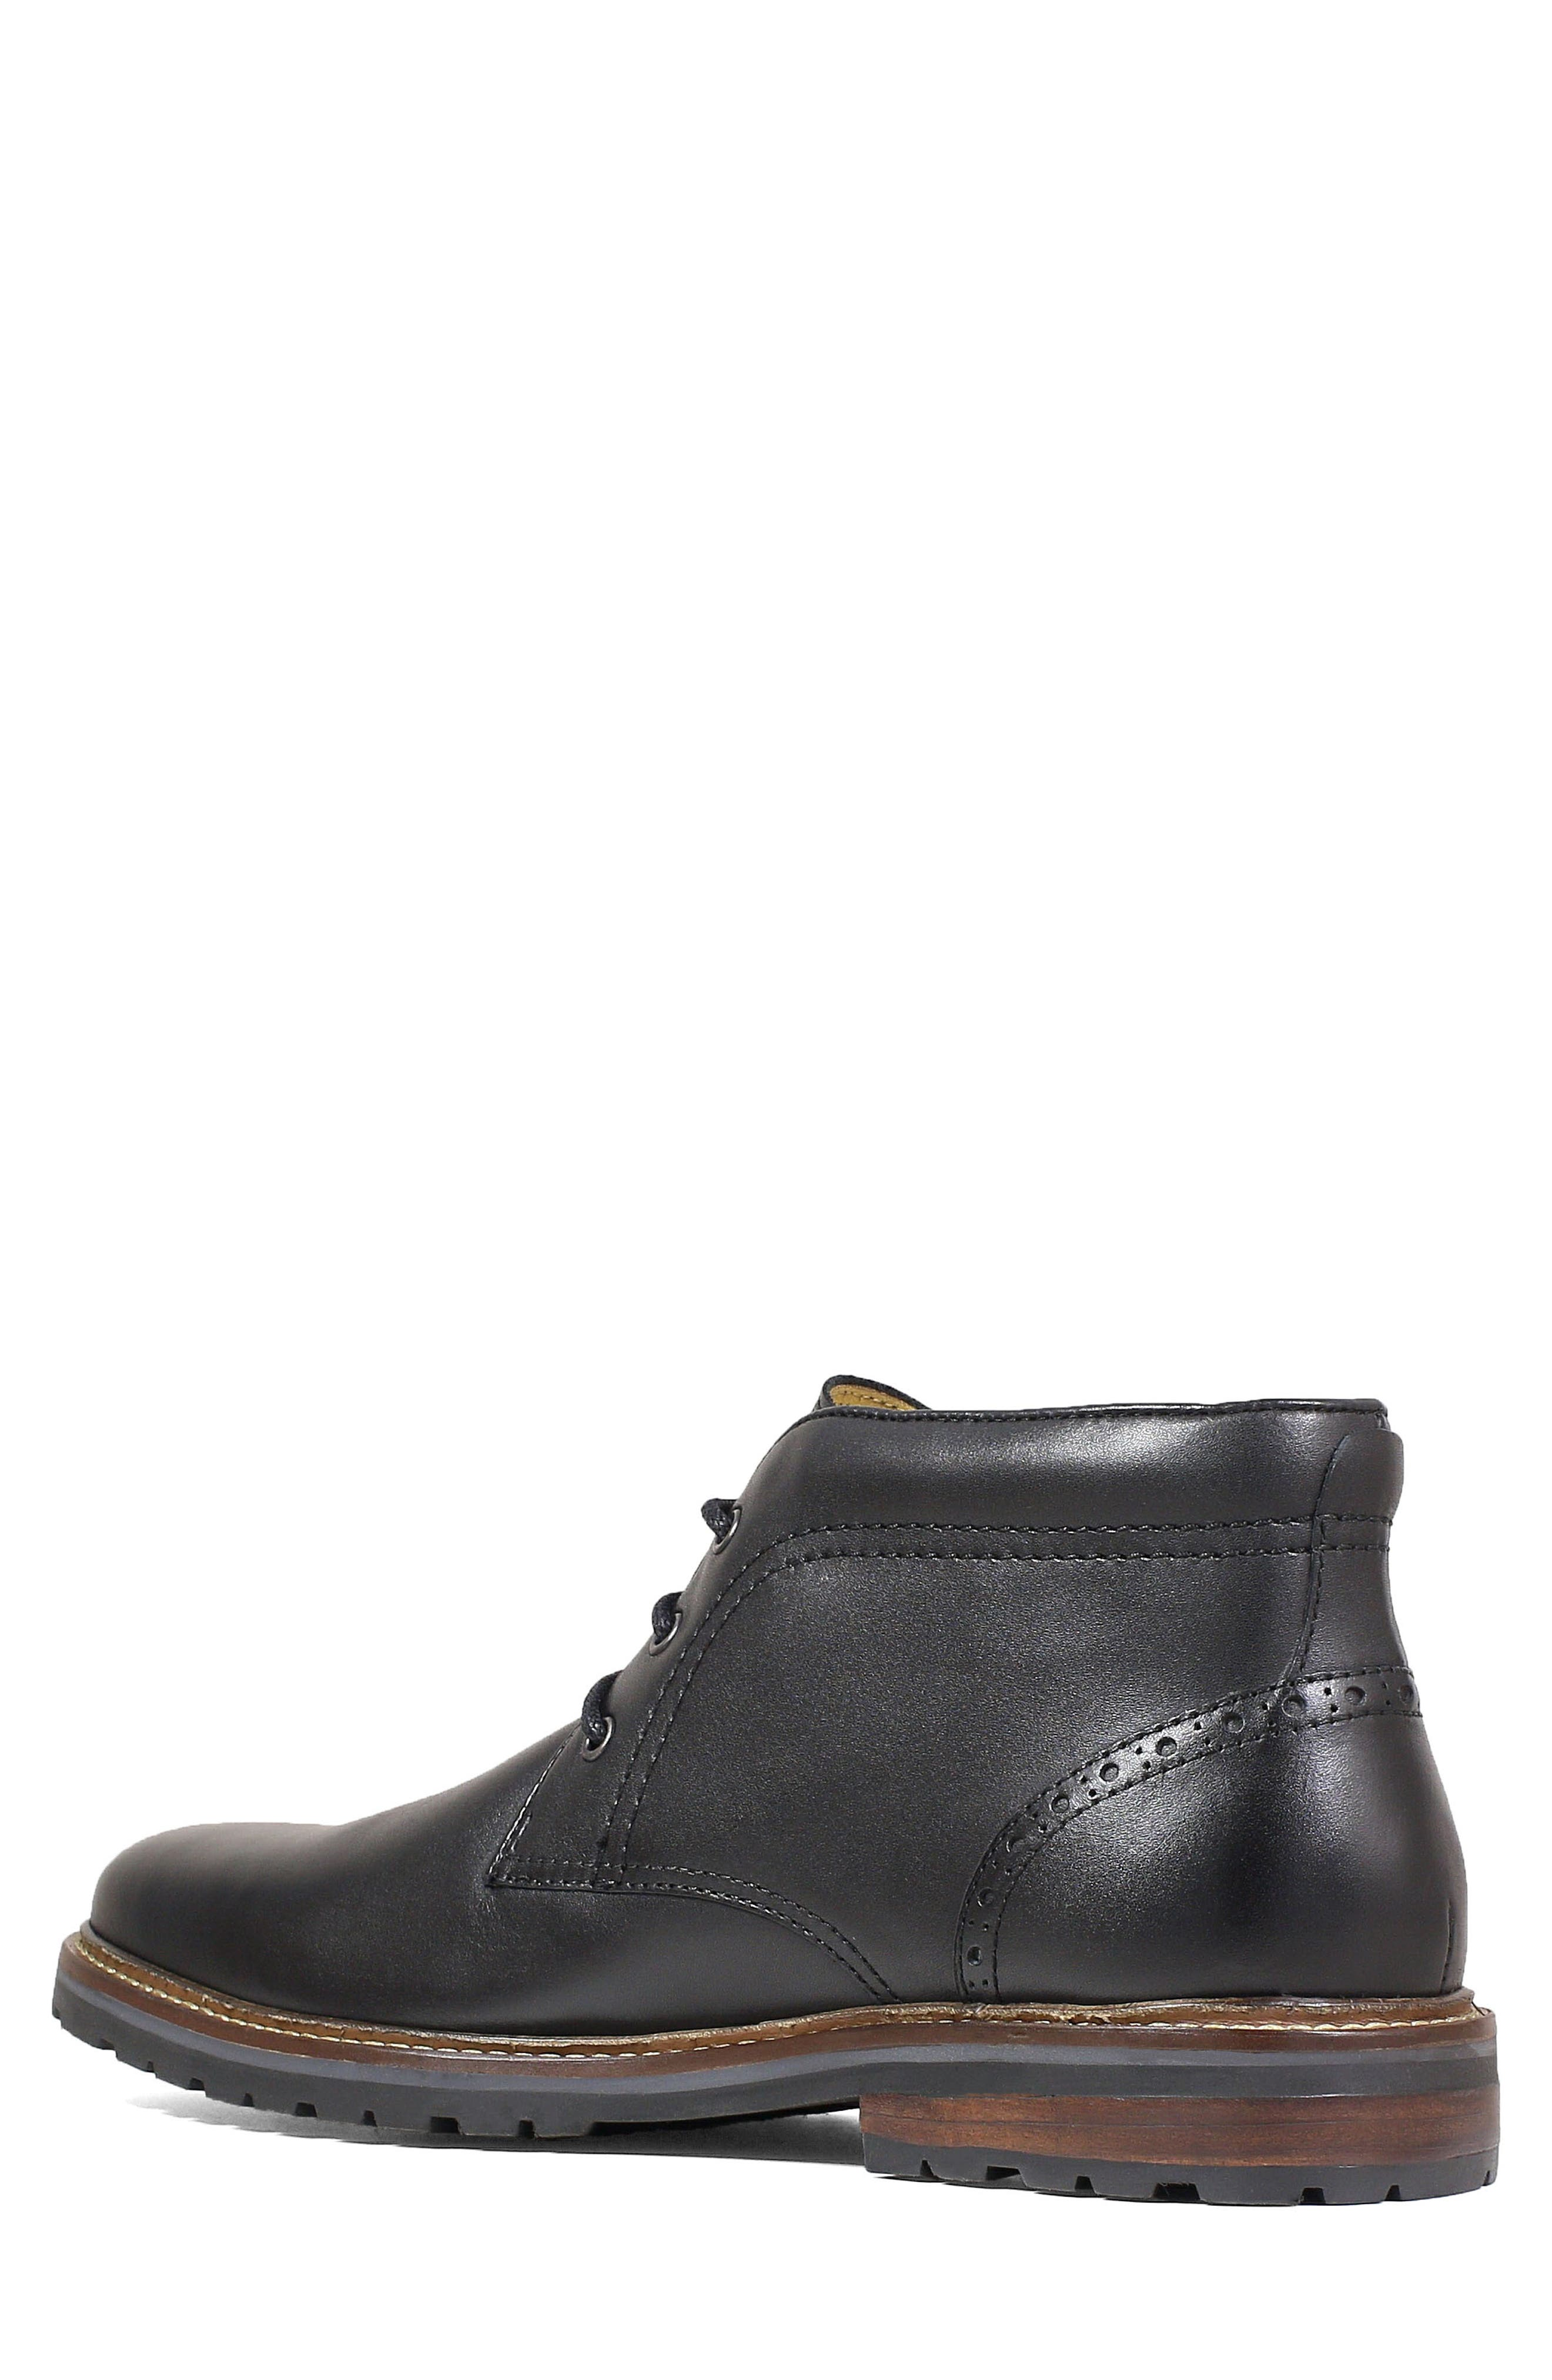 Estabrook Lugged Chukka Boot,                             Alternate thumbnail 2, color,                             BLACK LEATHER